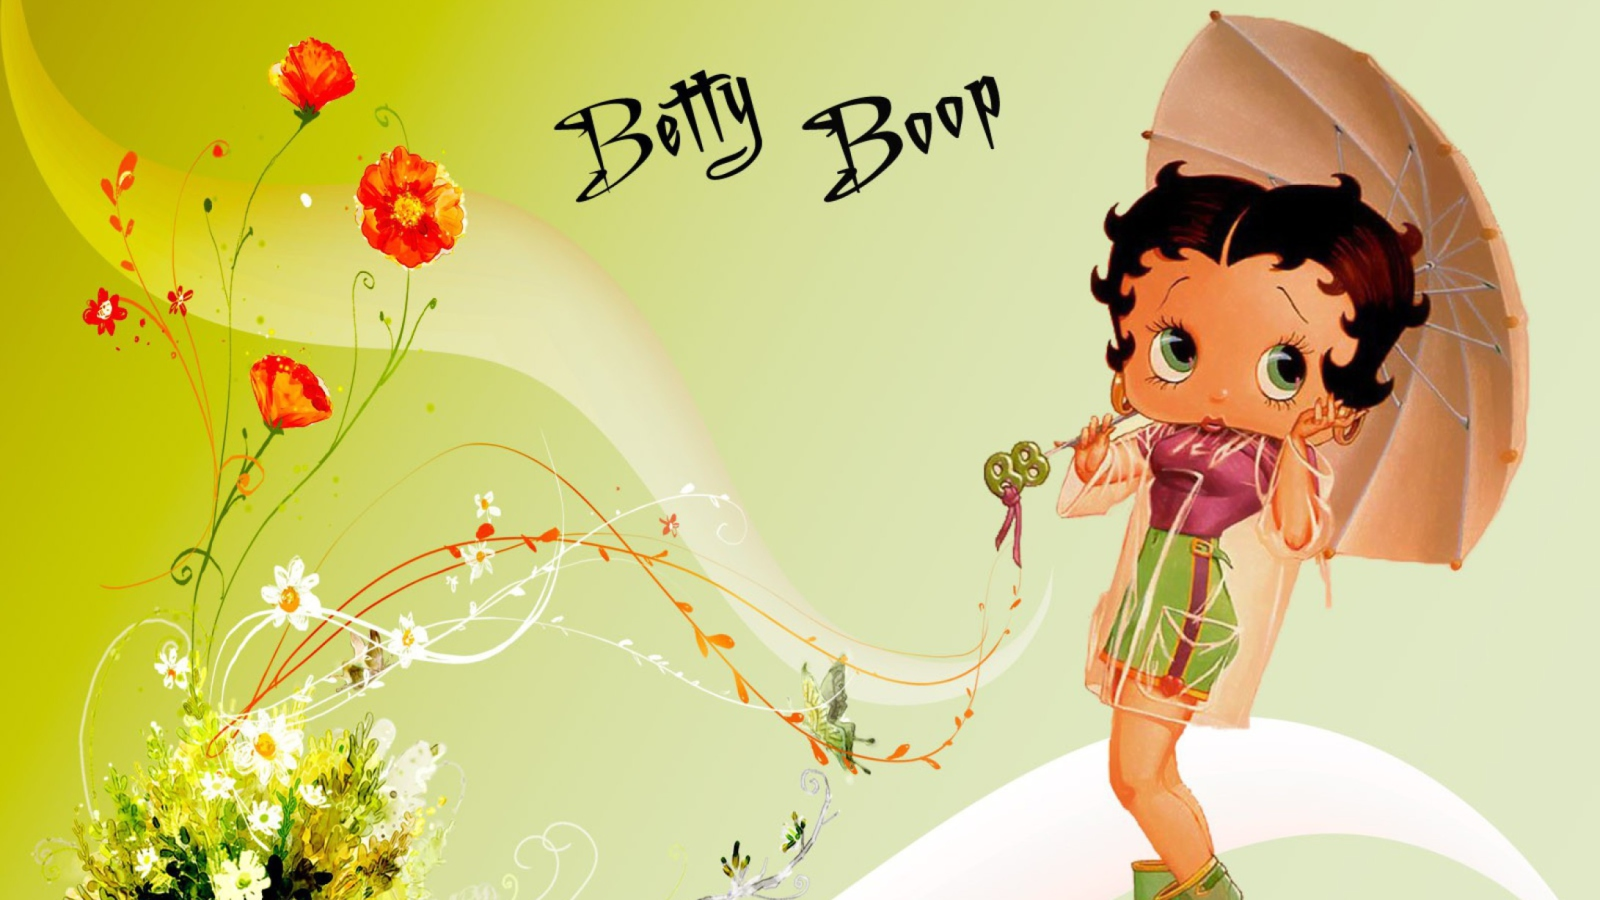 betty boop downloads free mobile wallpapers betty boop